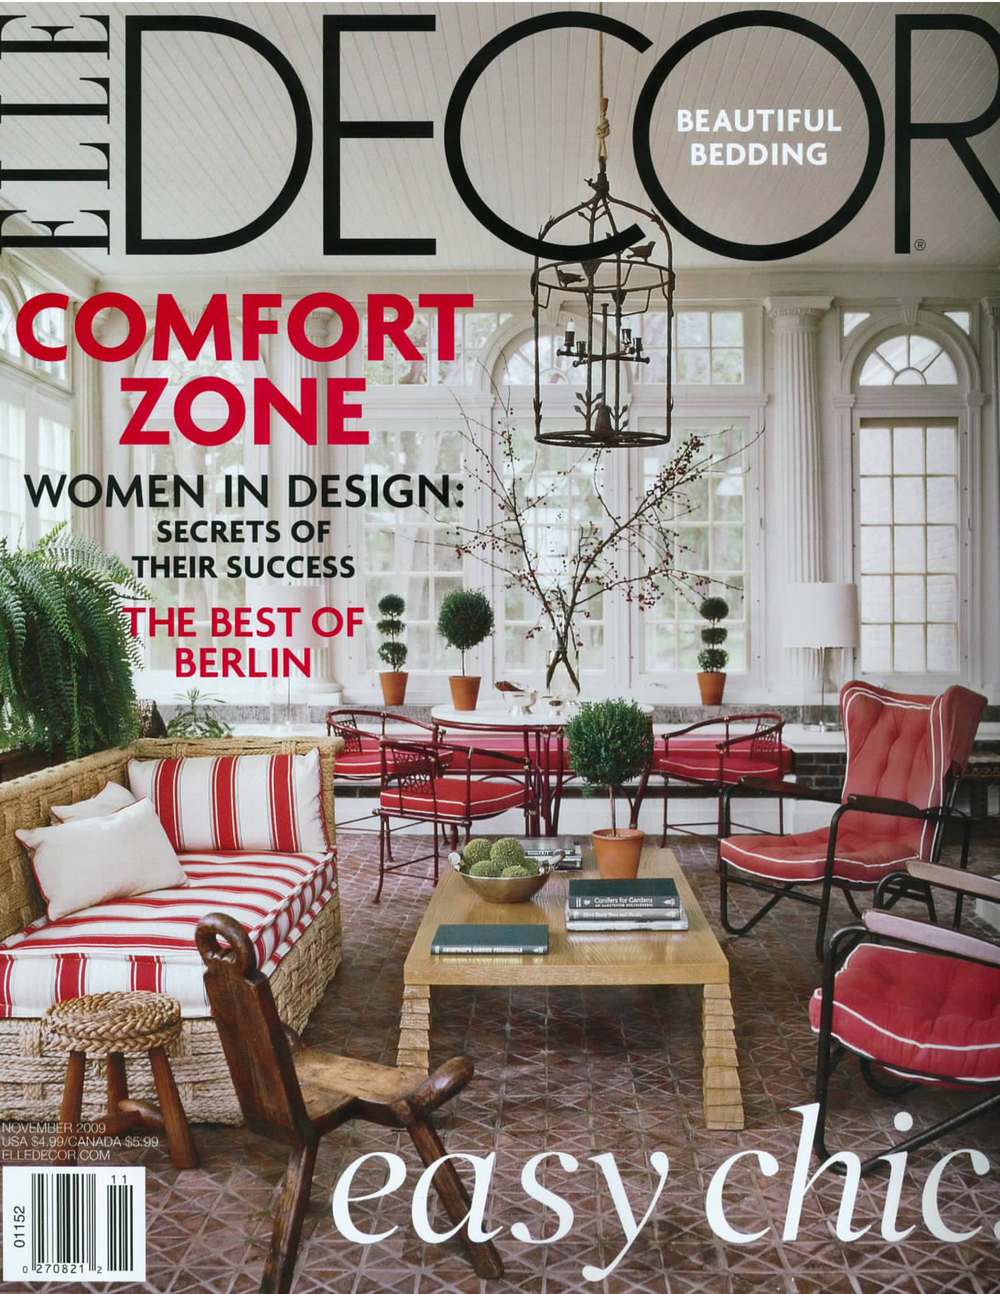 November 2009 Elle Decor Cover.jpg